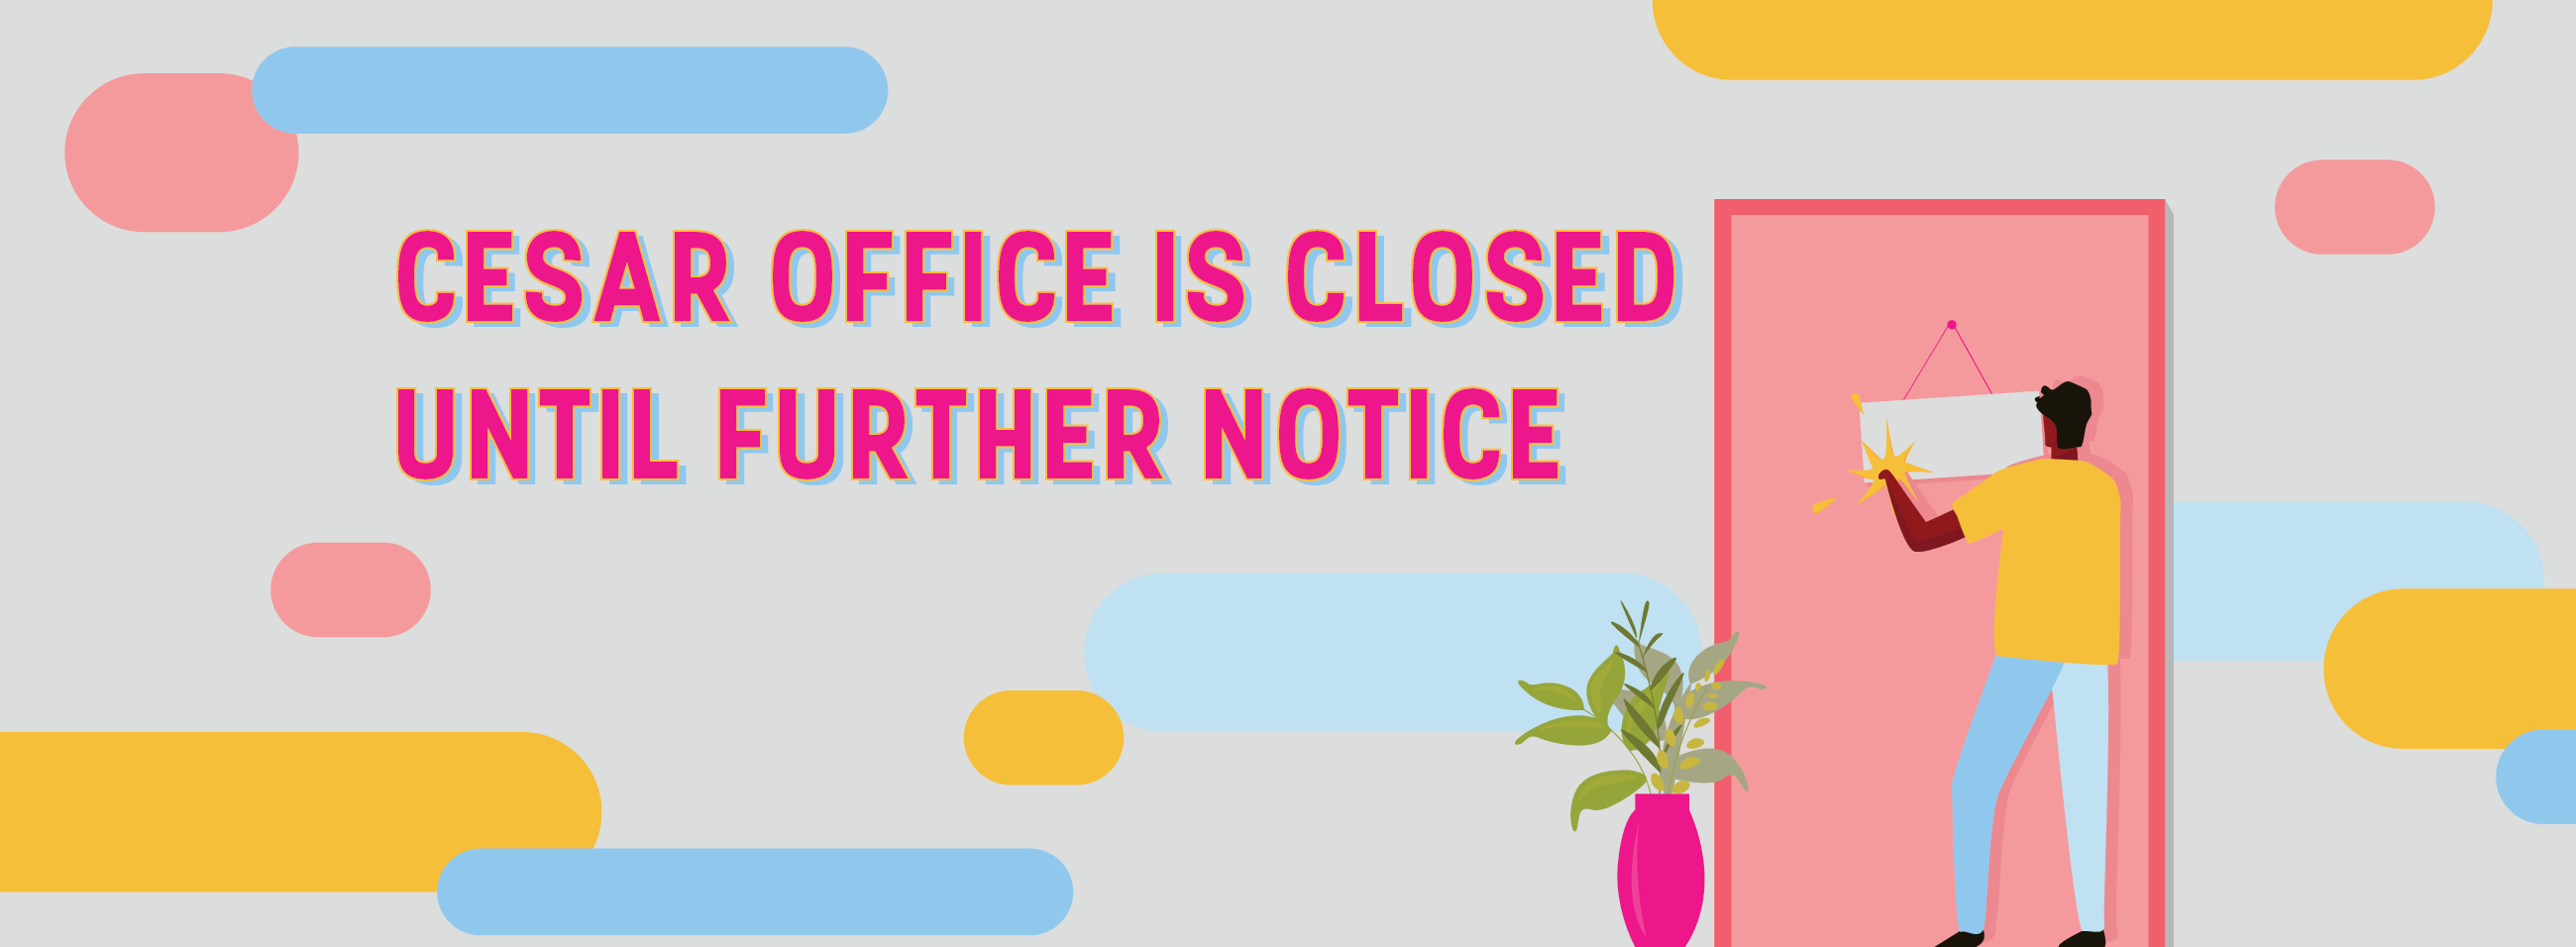 CESAR office is closed until further notice.